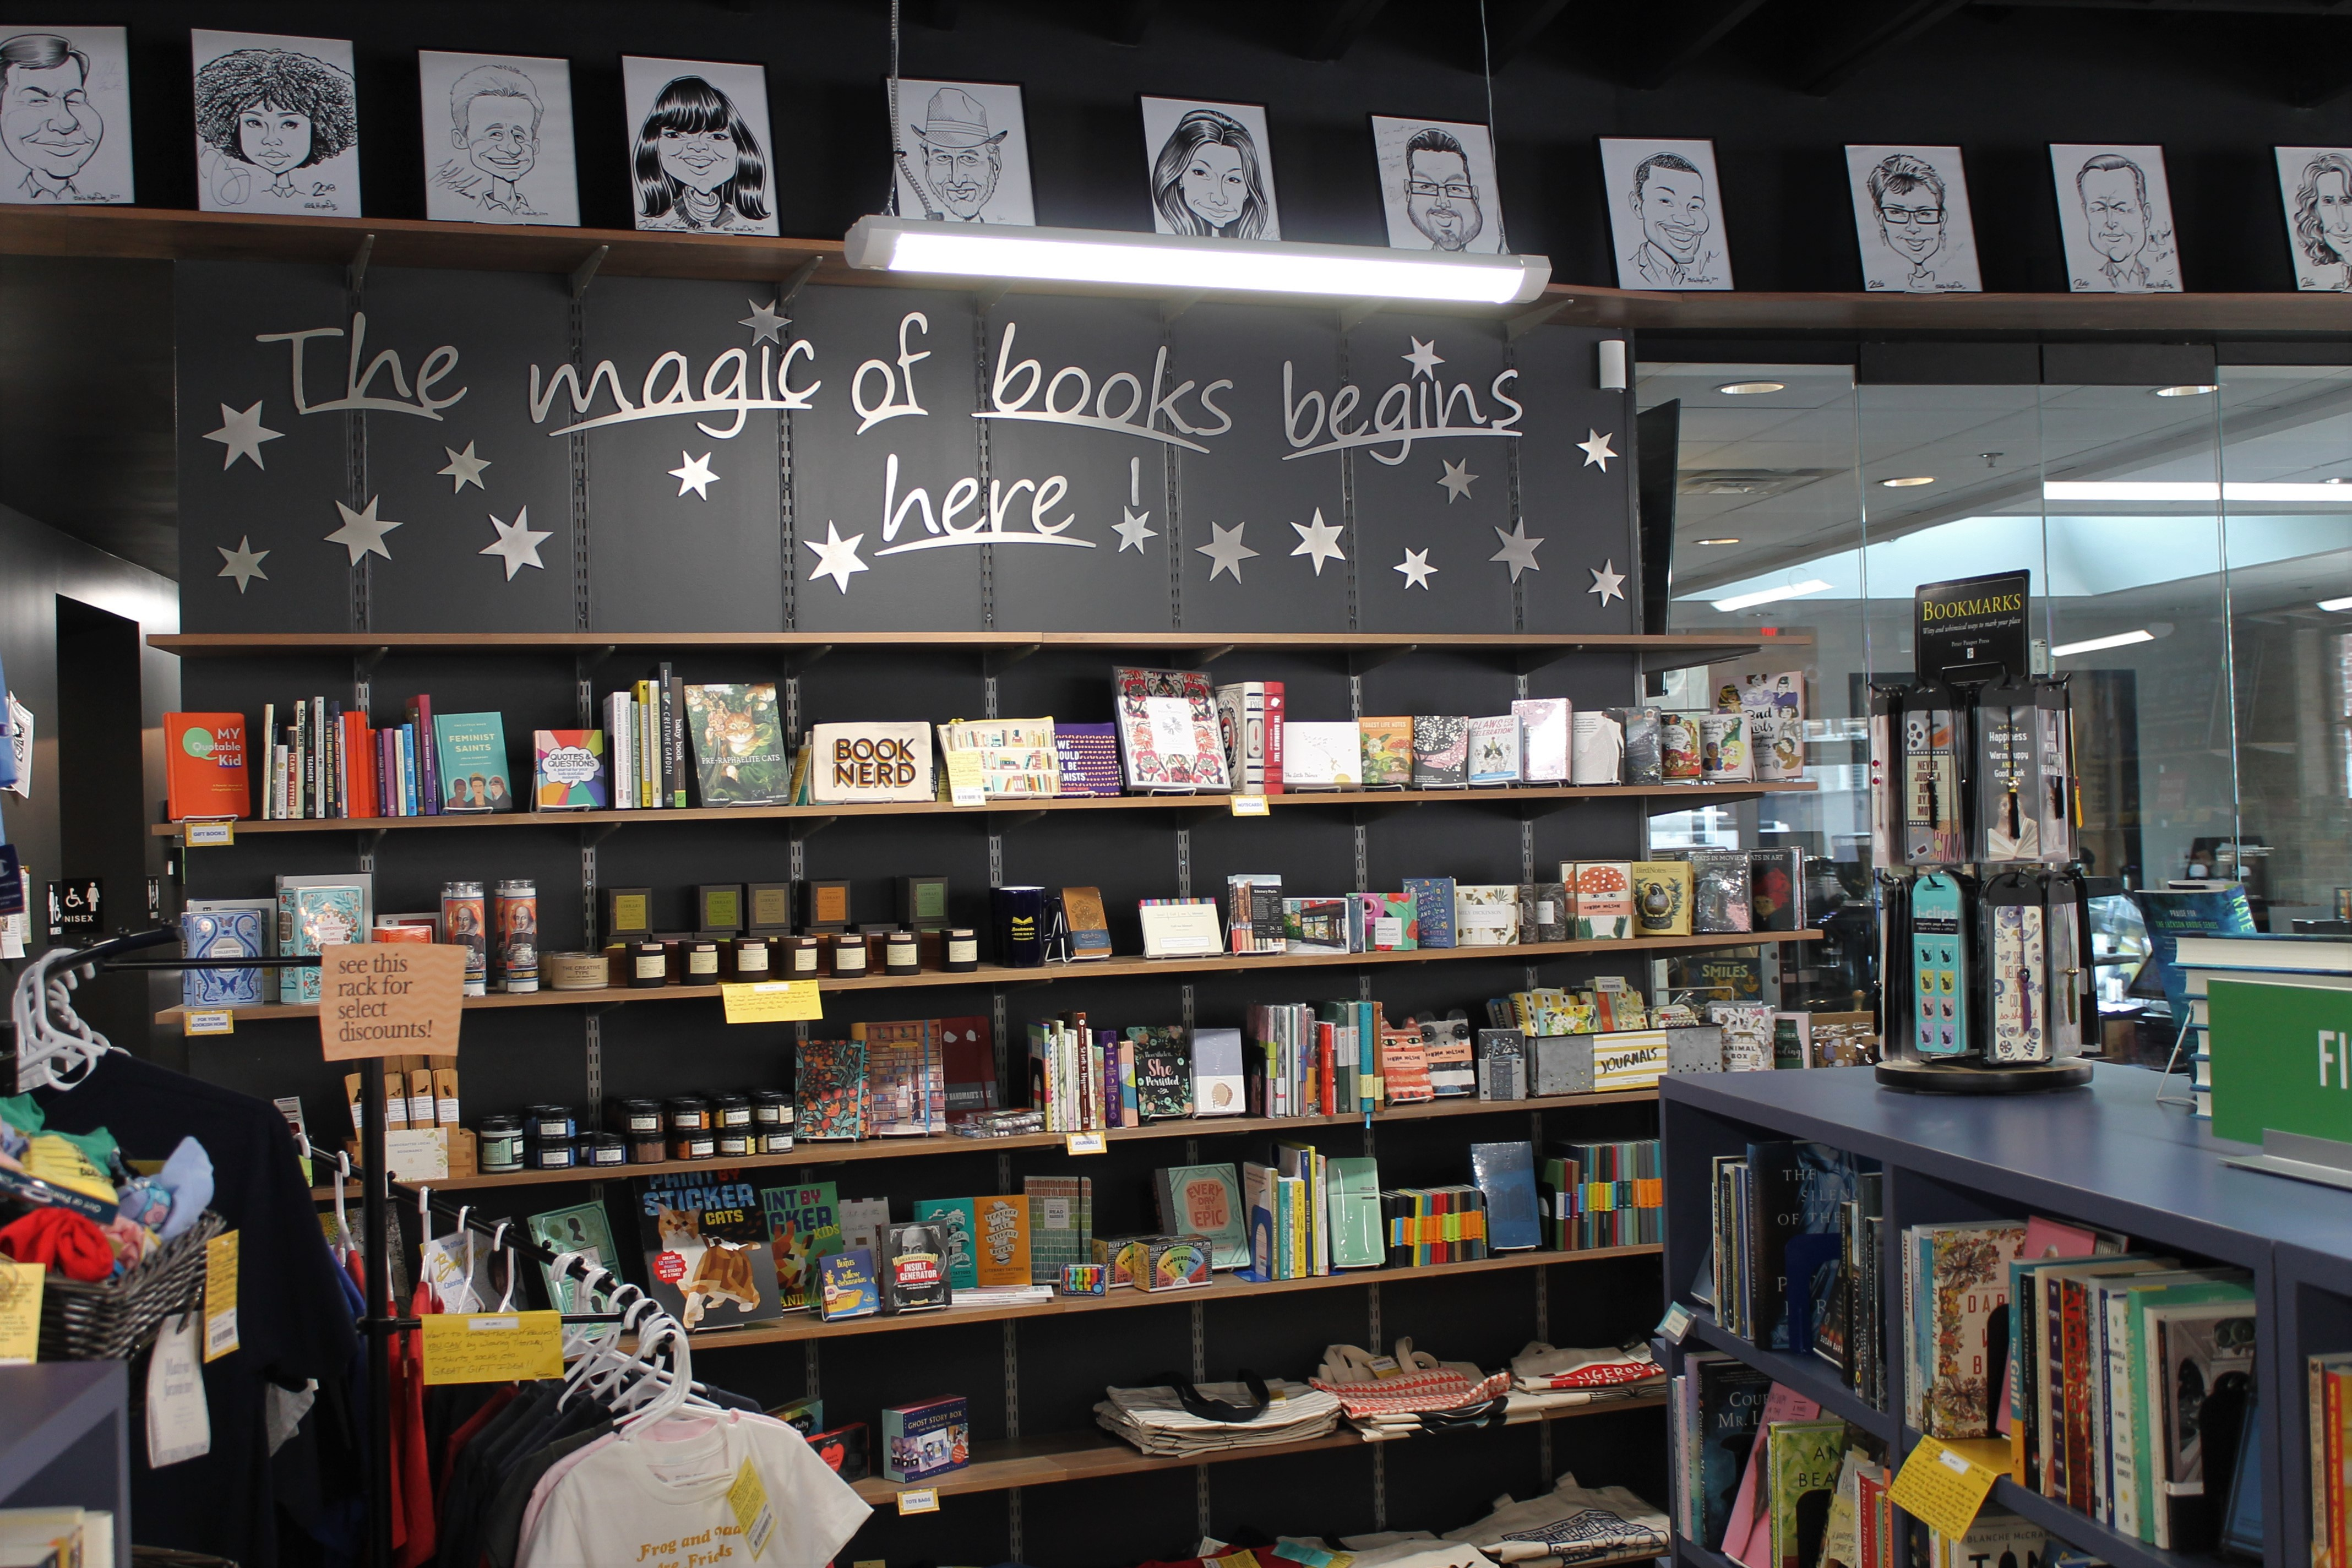 The magic of books begins here on wall!